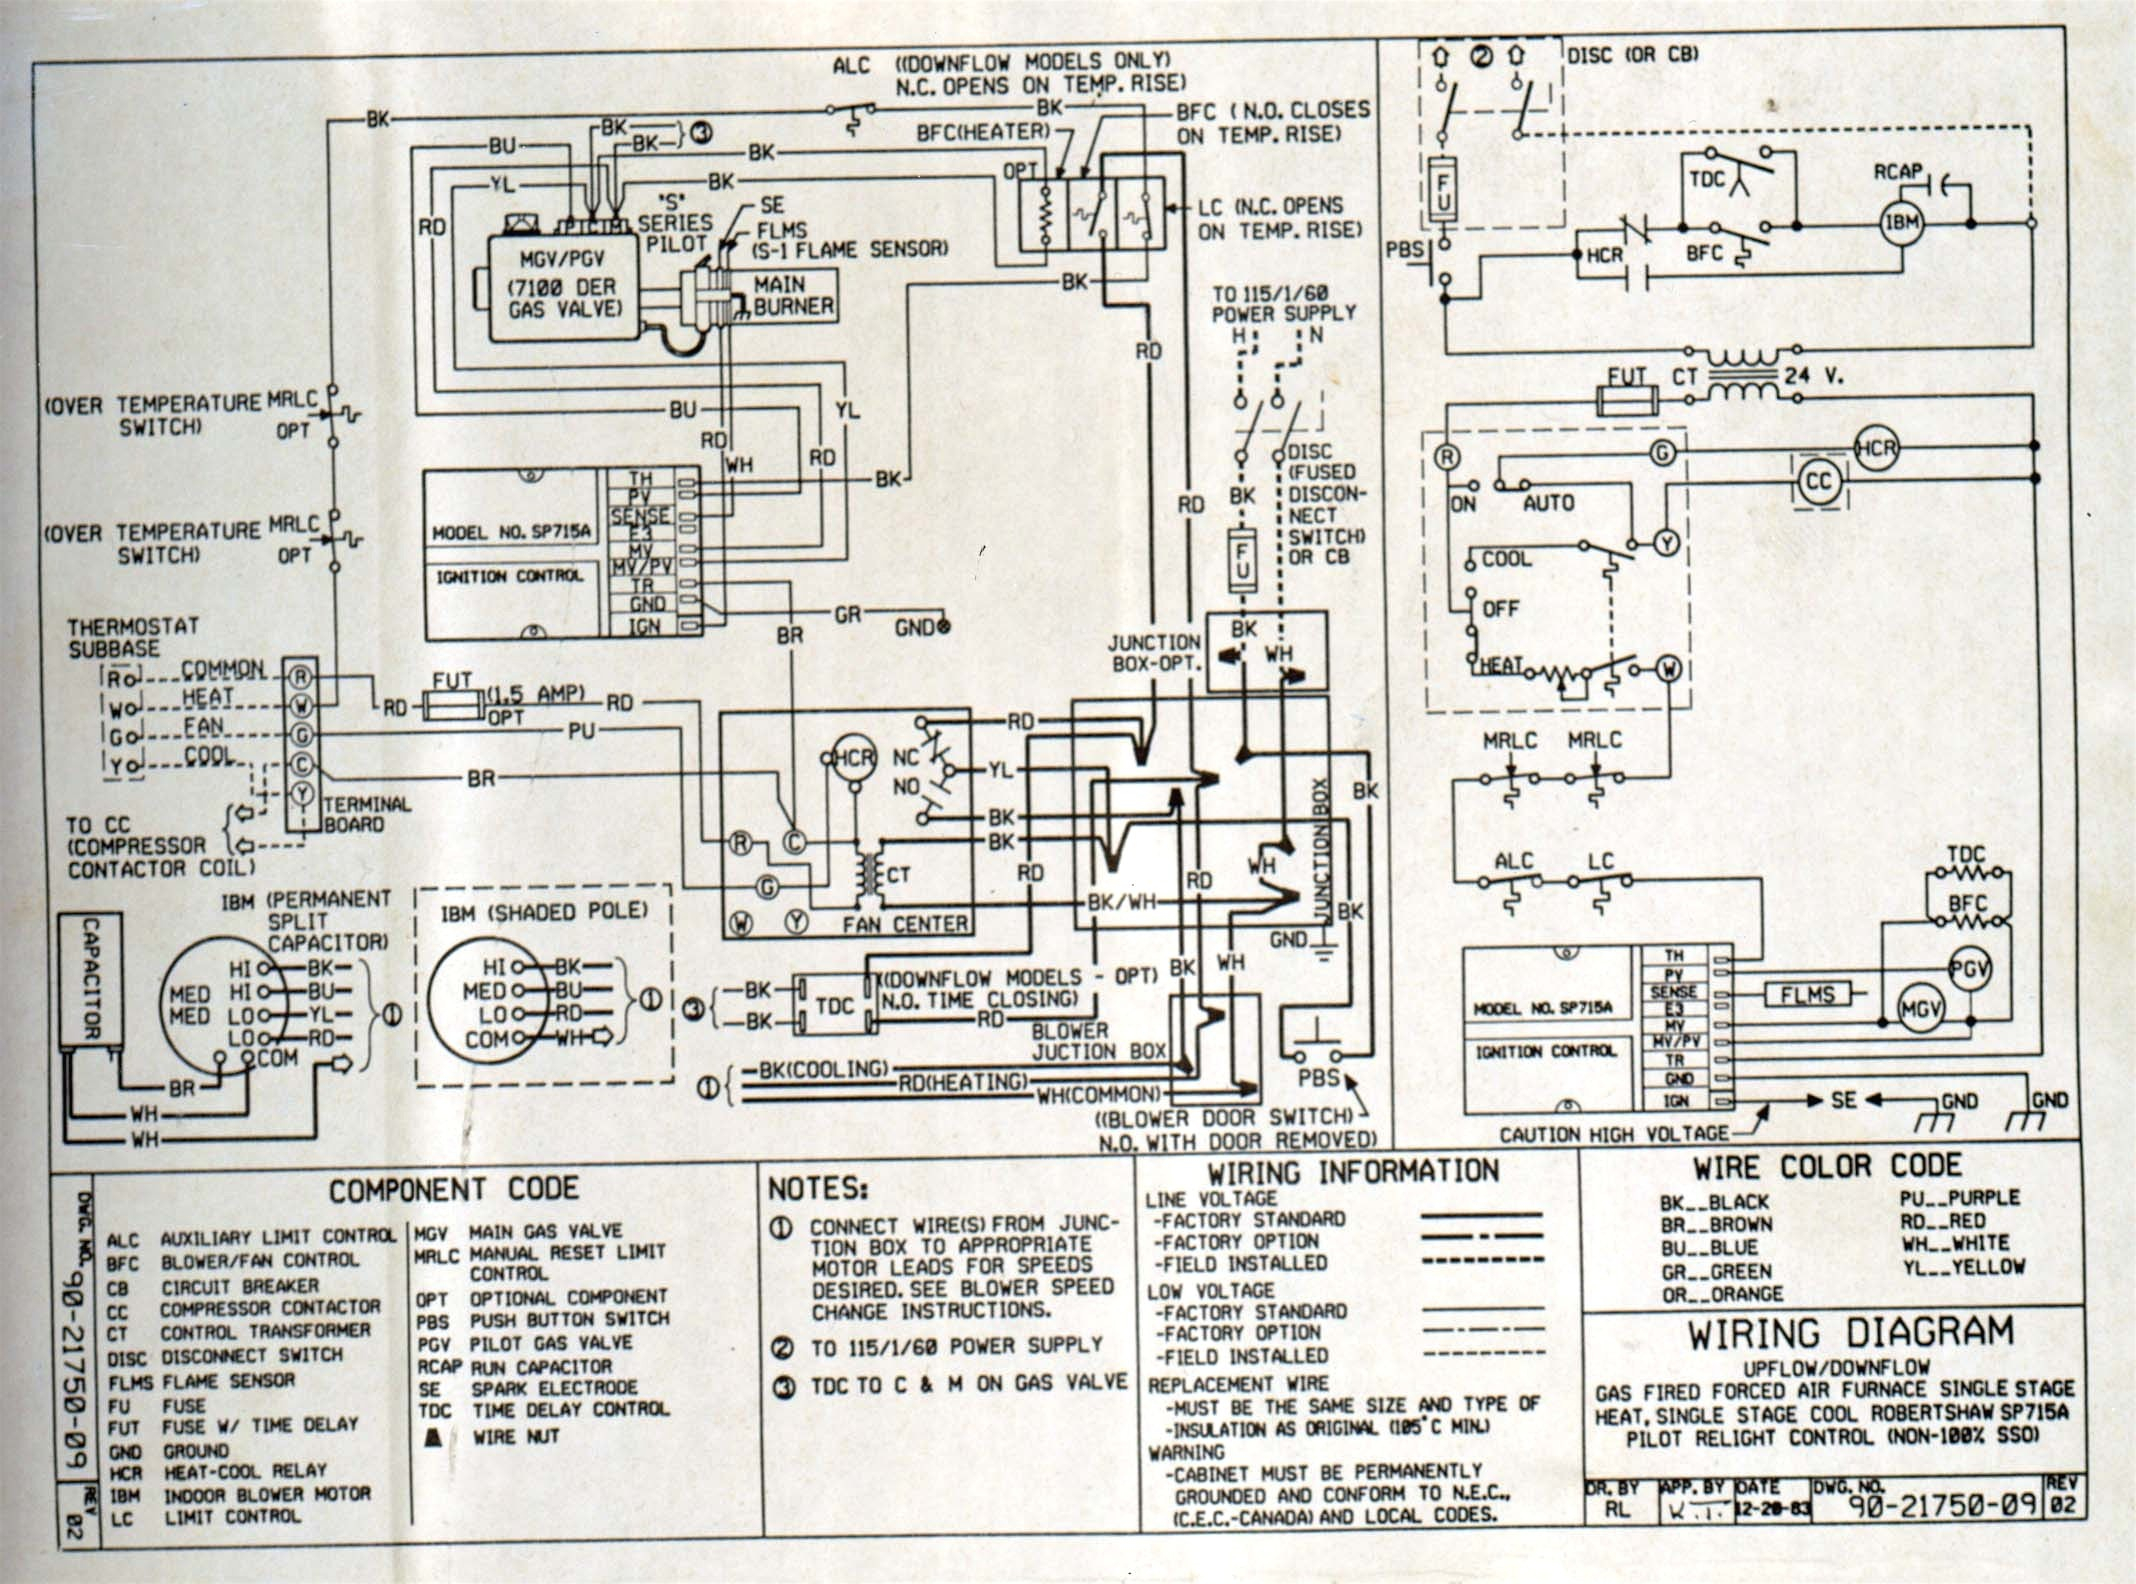 goodman furnace wiring diagram Download-Payne Electric Furnace Wiring Diagram Inspirationa Payne Air Handler Wiring Diagram In Image Goodman Electric Lovely 11-m